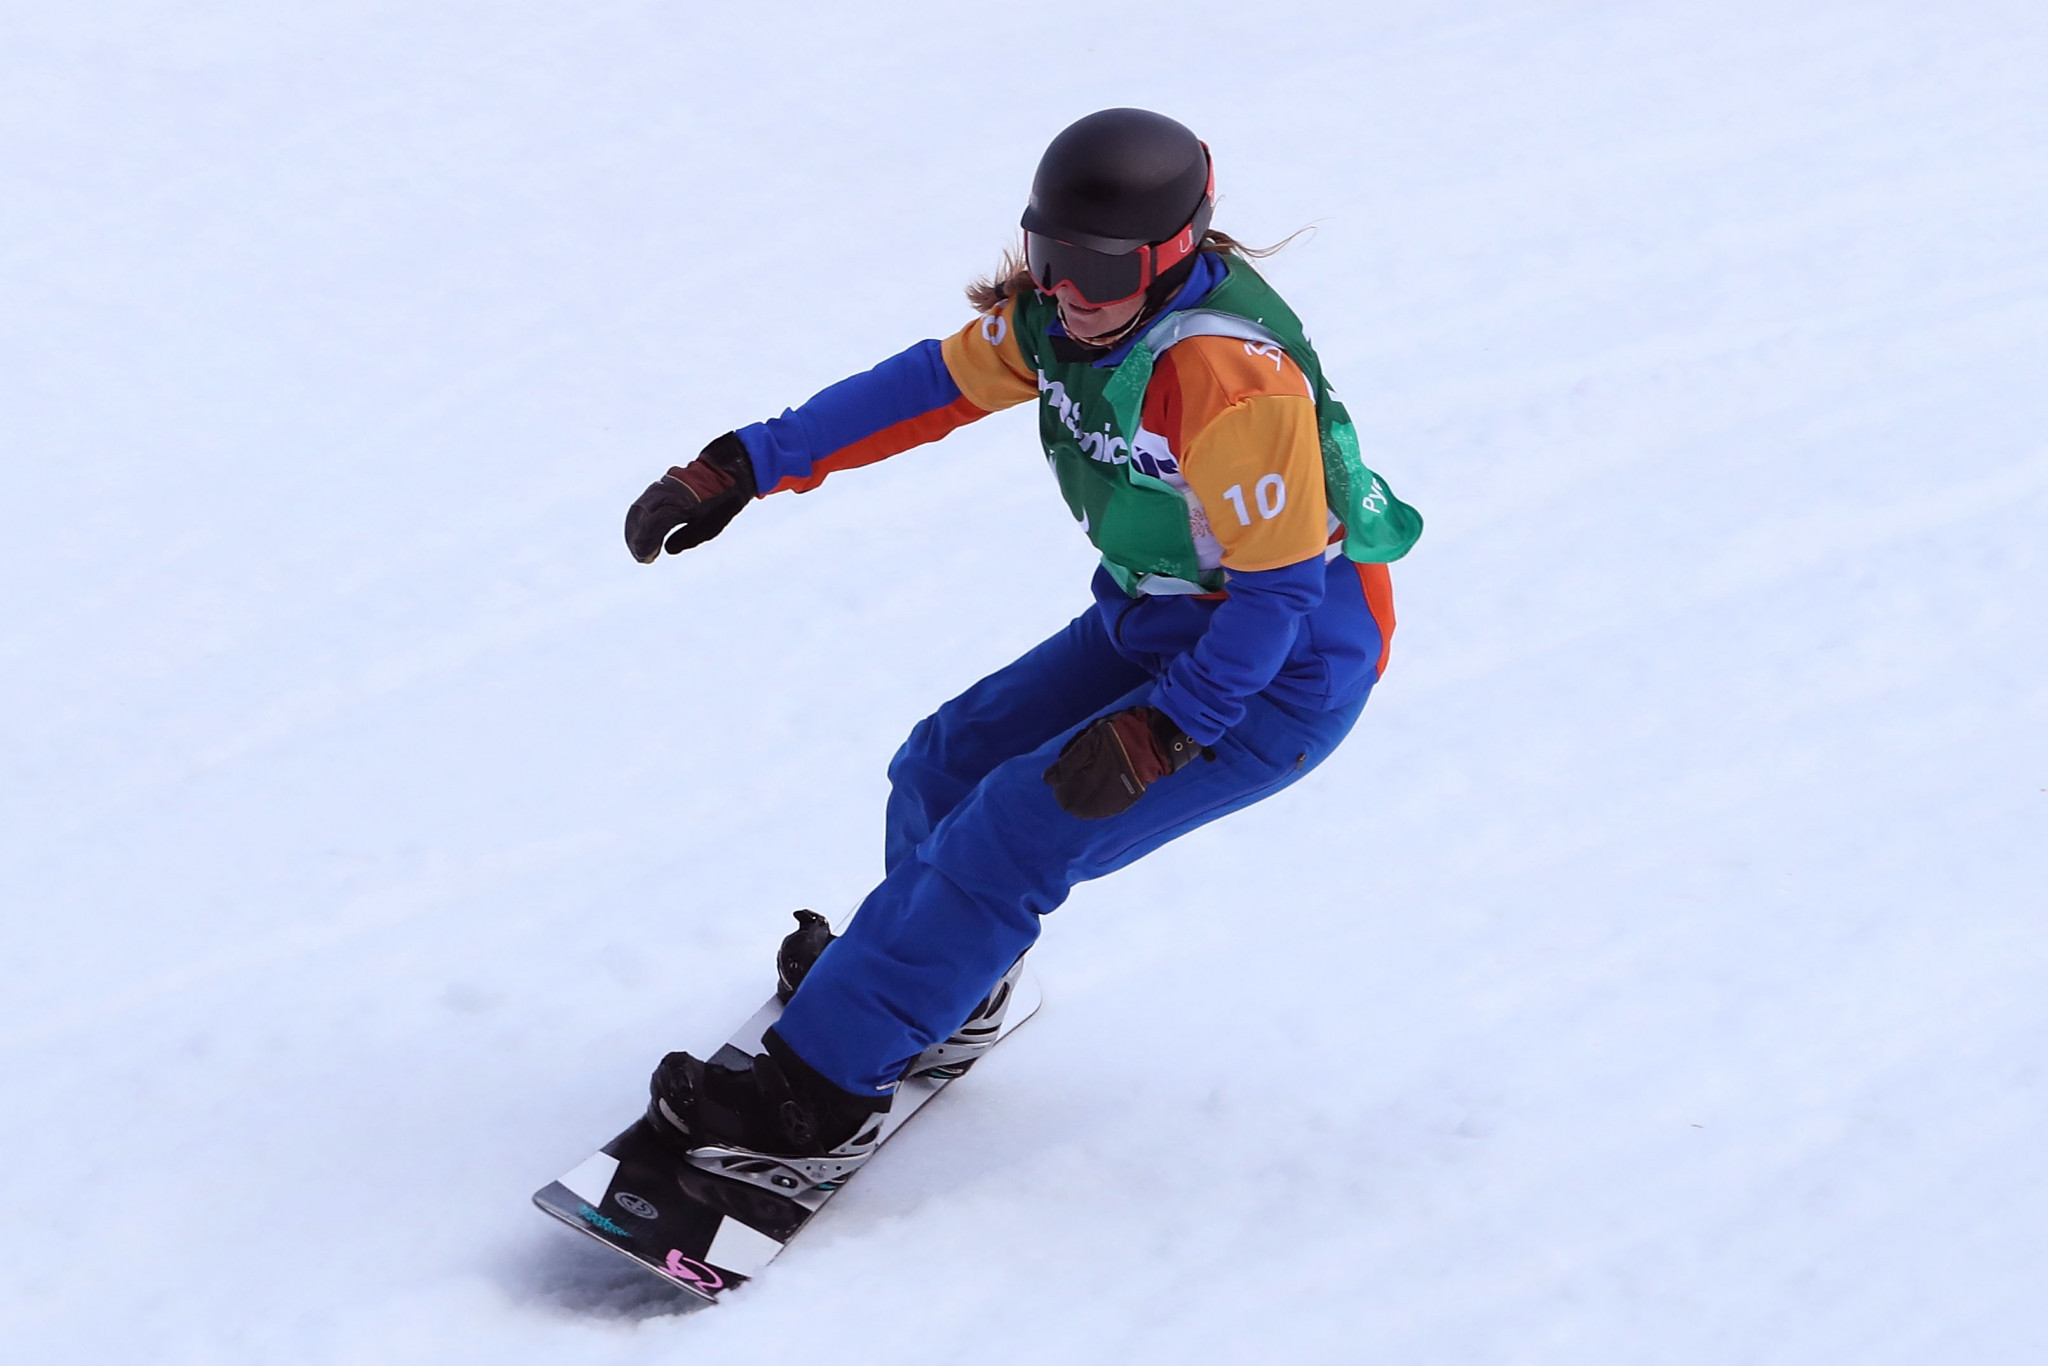 Home favourite Fina Paredes eyeing success at World Para Snowboard World Cup in La Molina